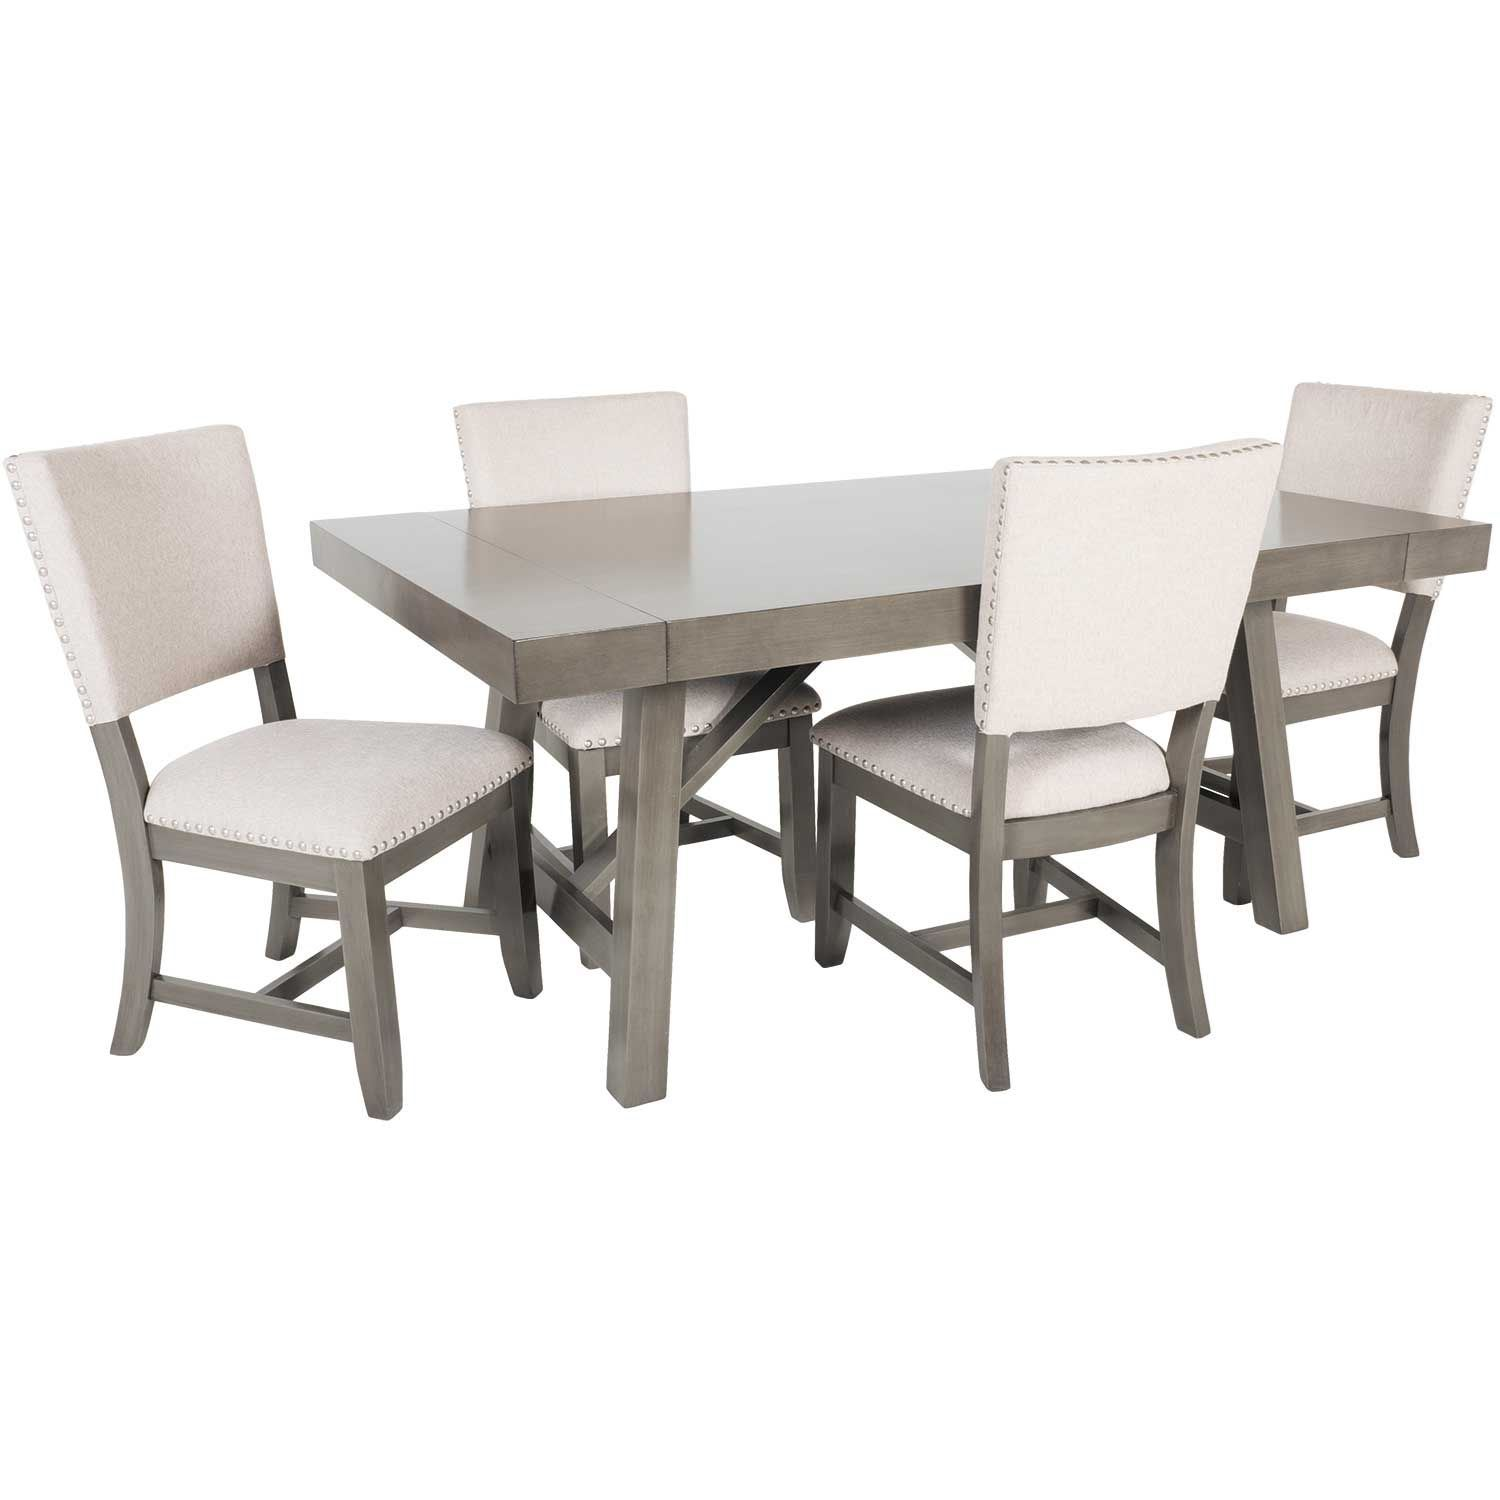 Omaha grey trestle 5 piece dining set 16681 5pc for 5 piece dining set